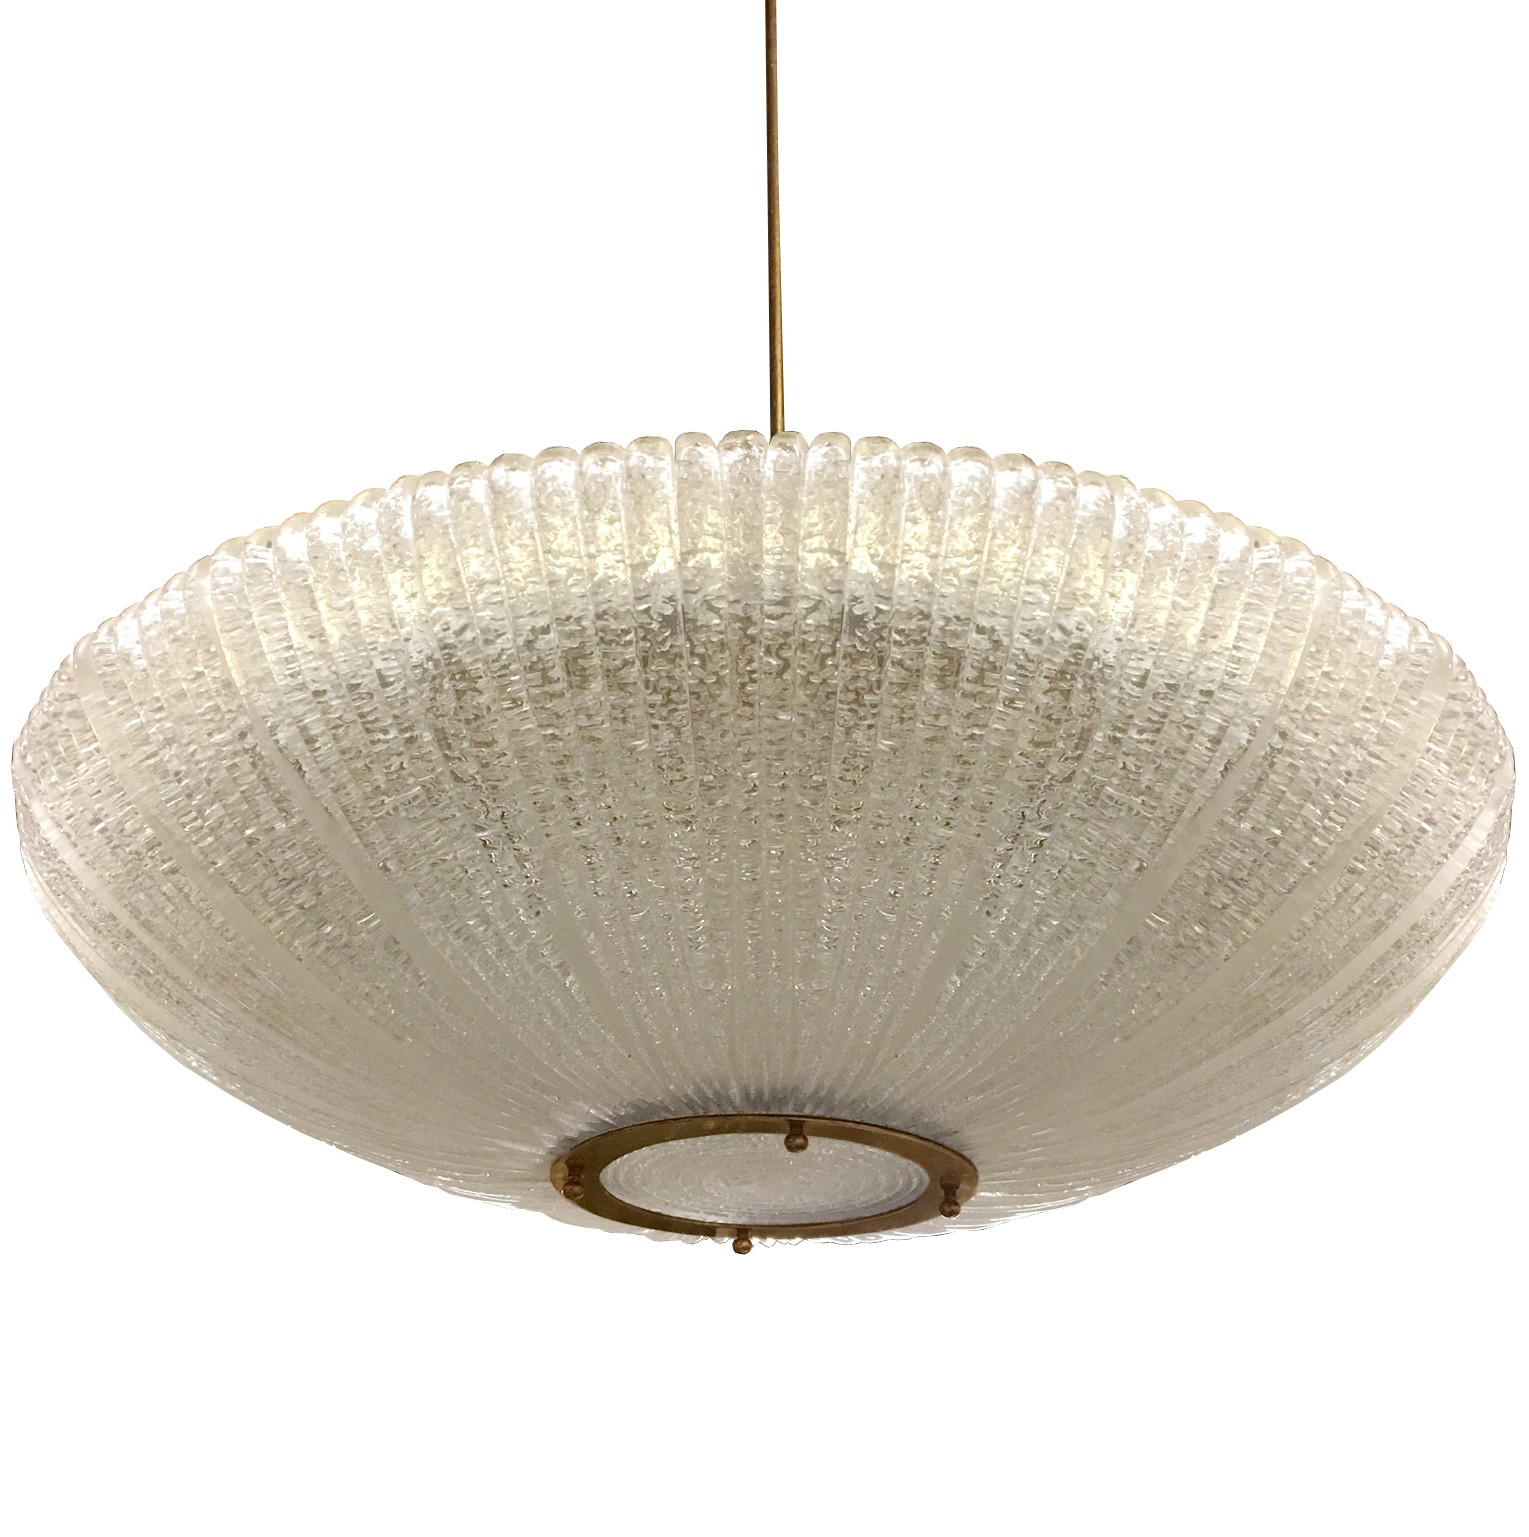 Large Fluted Glass Chandelier by Venini, 1960s (4 Available)